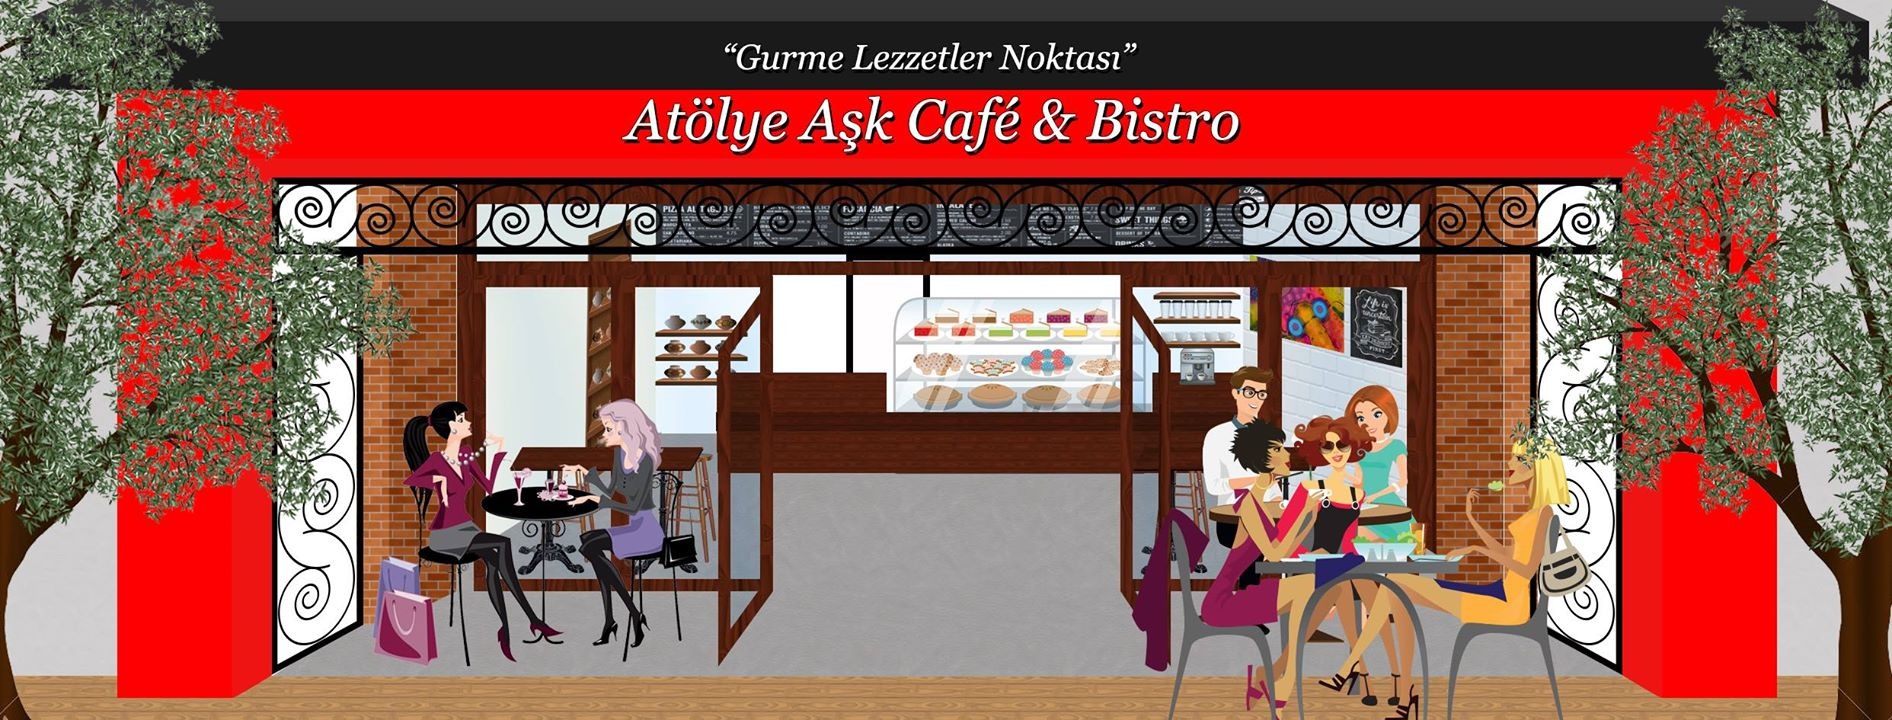 Atölye Aşk Cafe & Bistro Cover Image on XploreCyprus